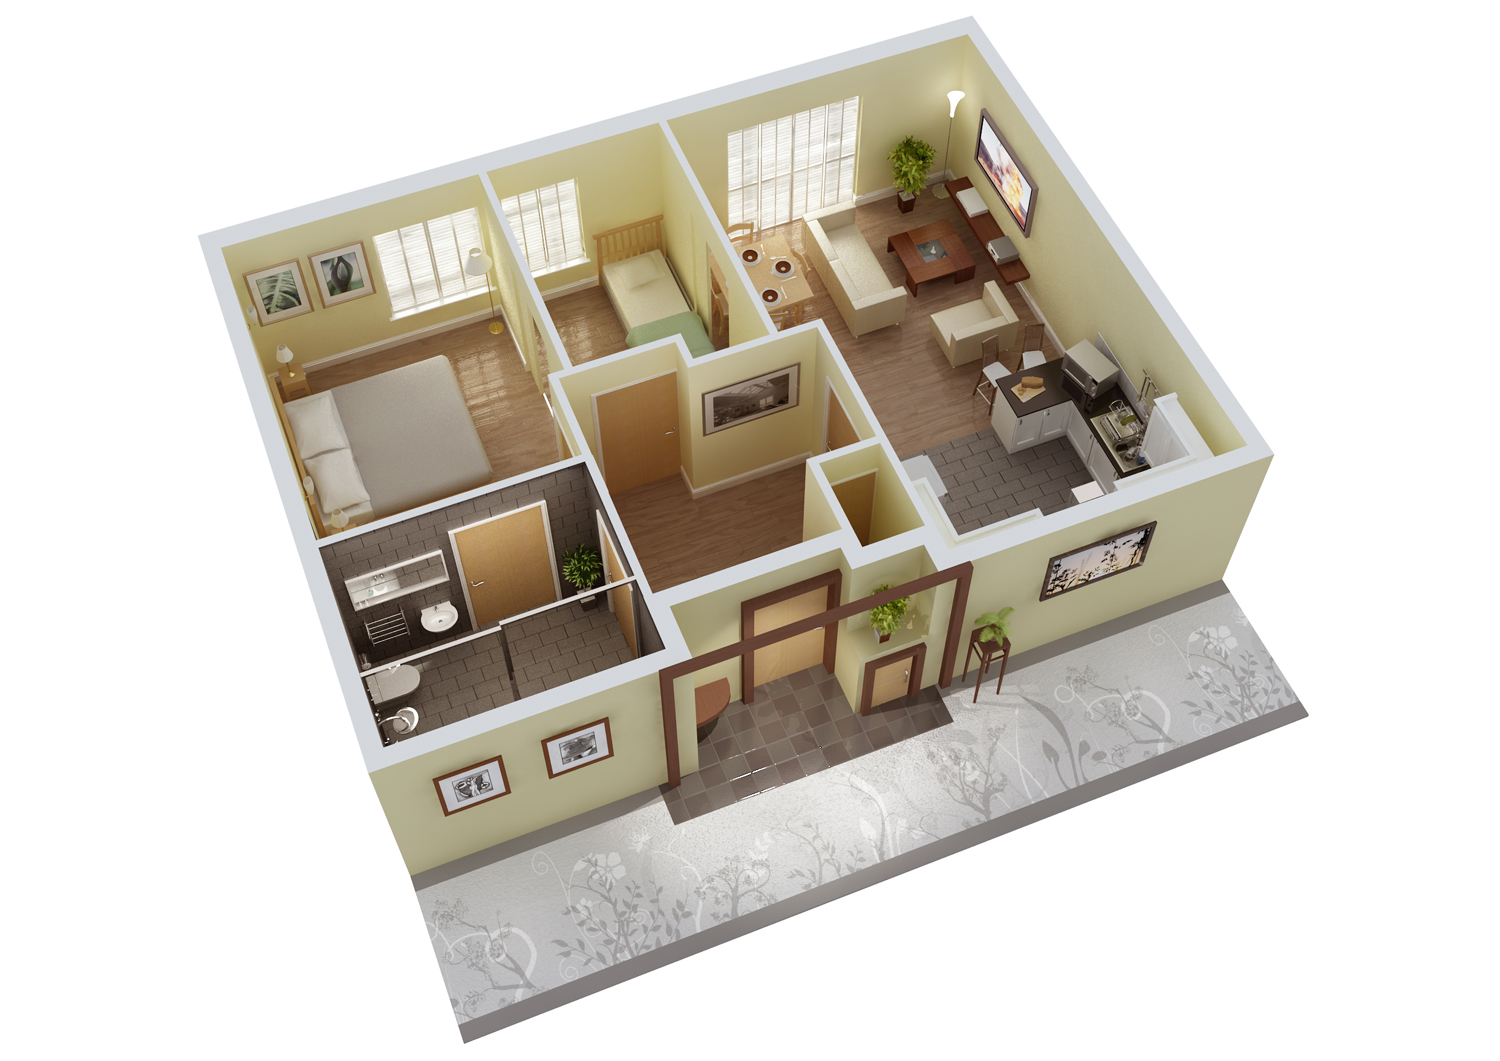 Mathematics resources project 3d floor plan House designer 3d